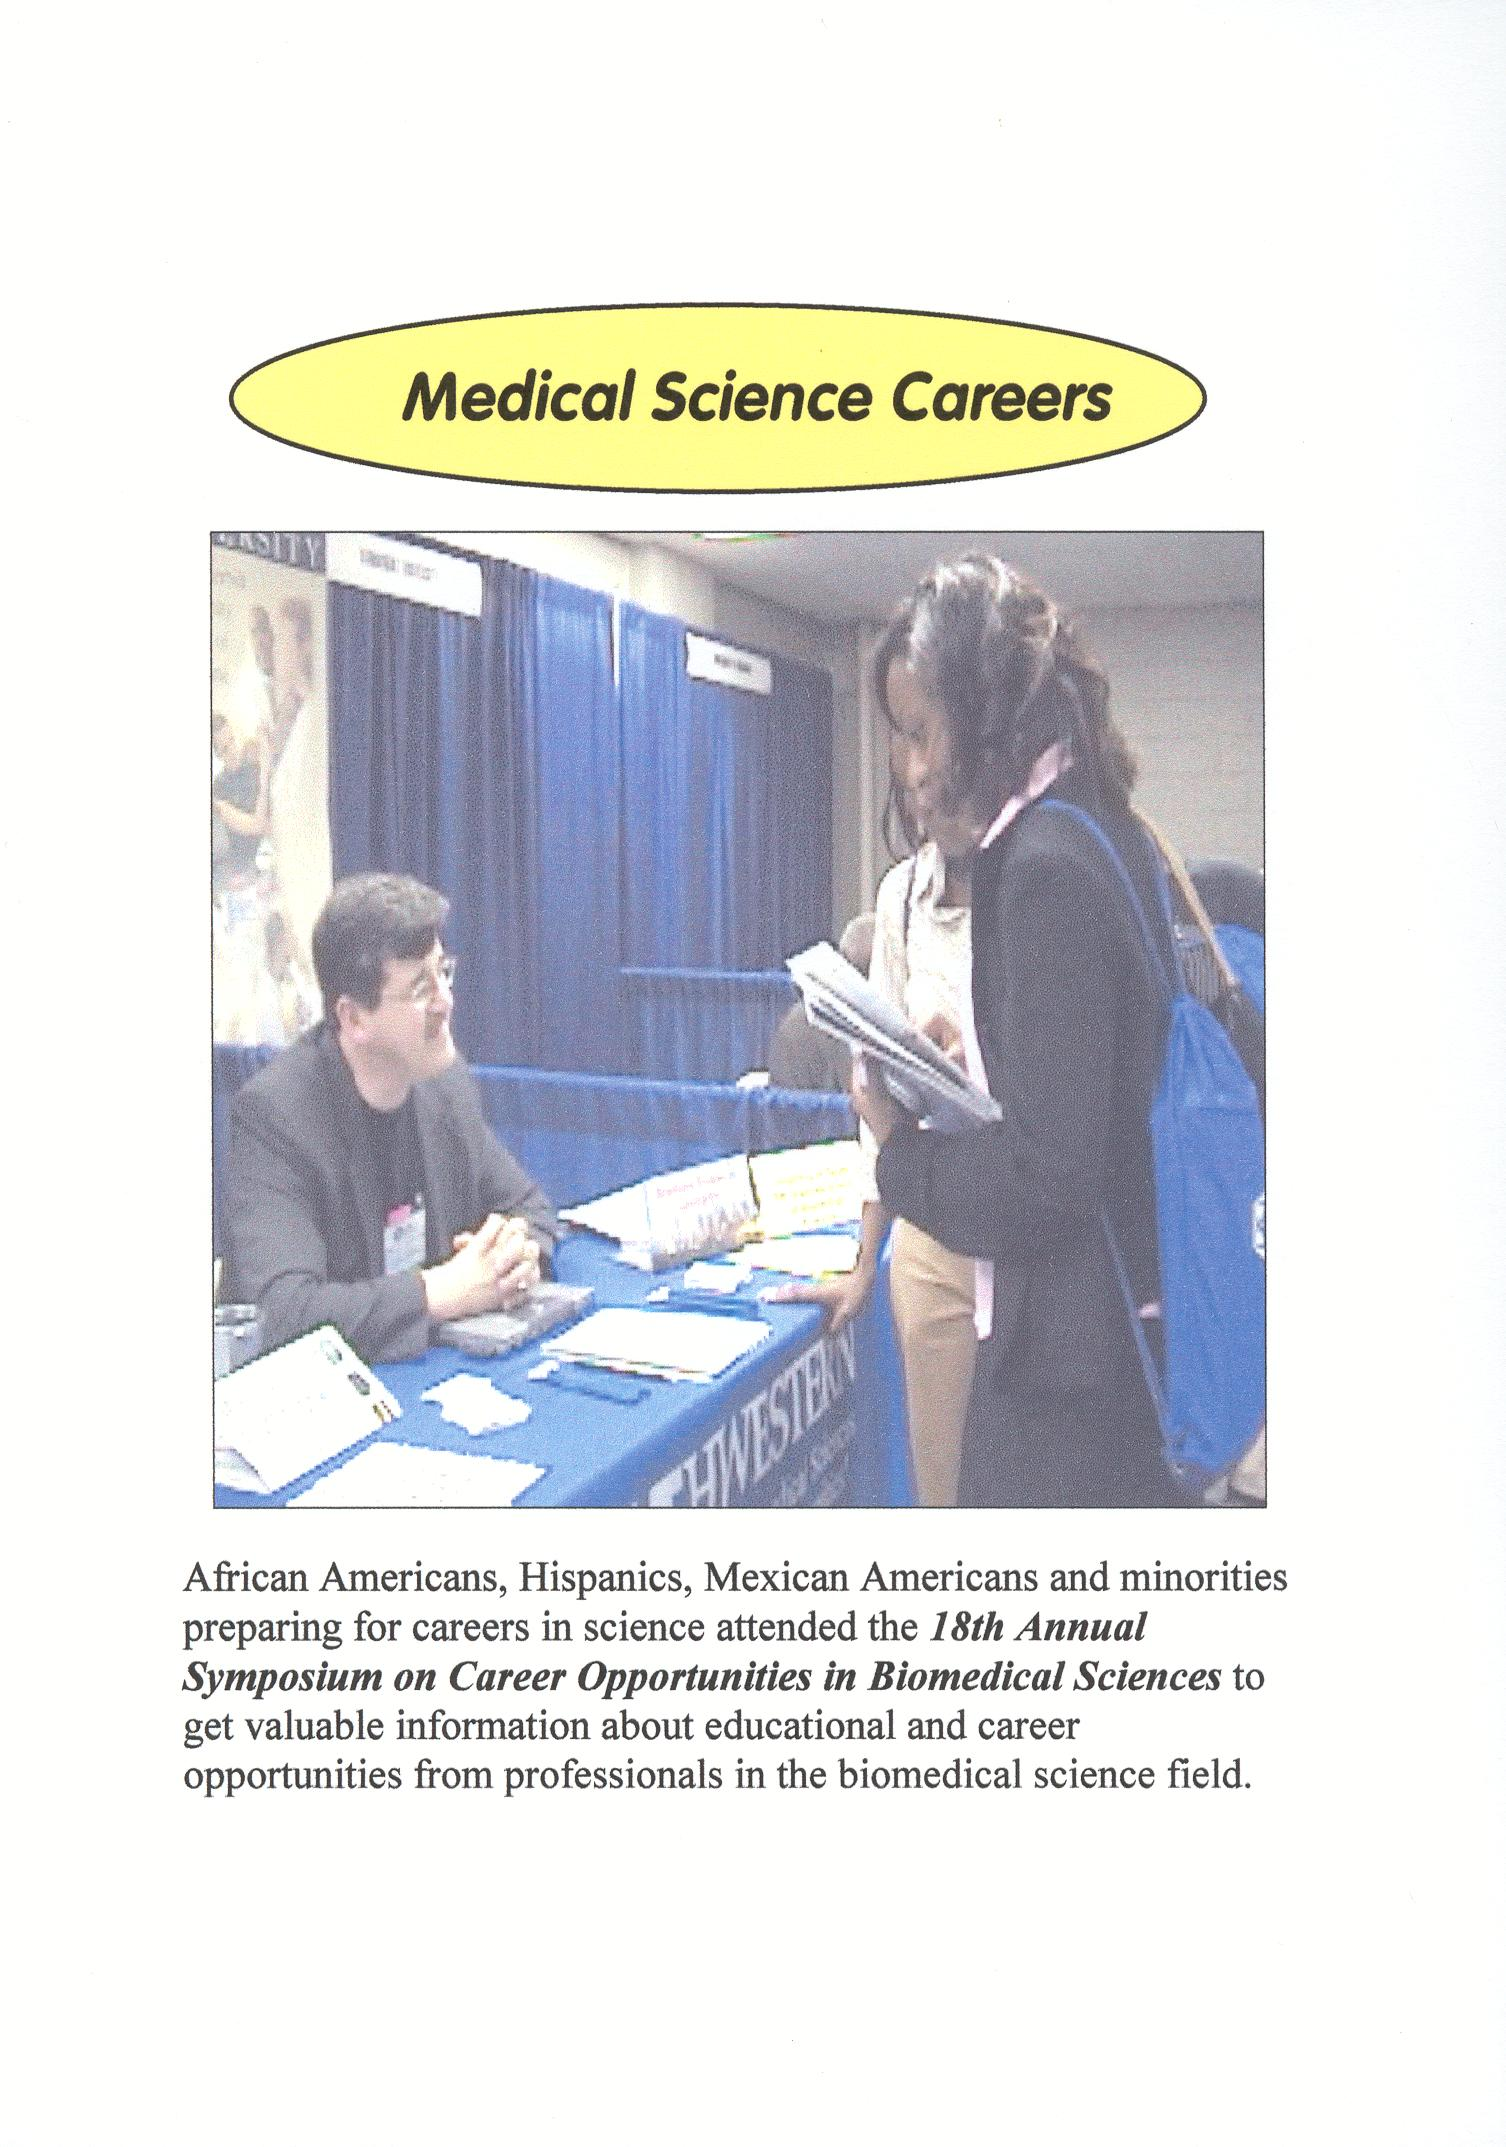 Medical Science Careers